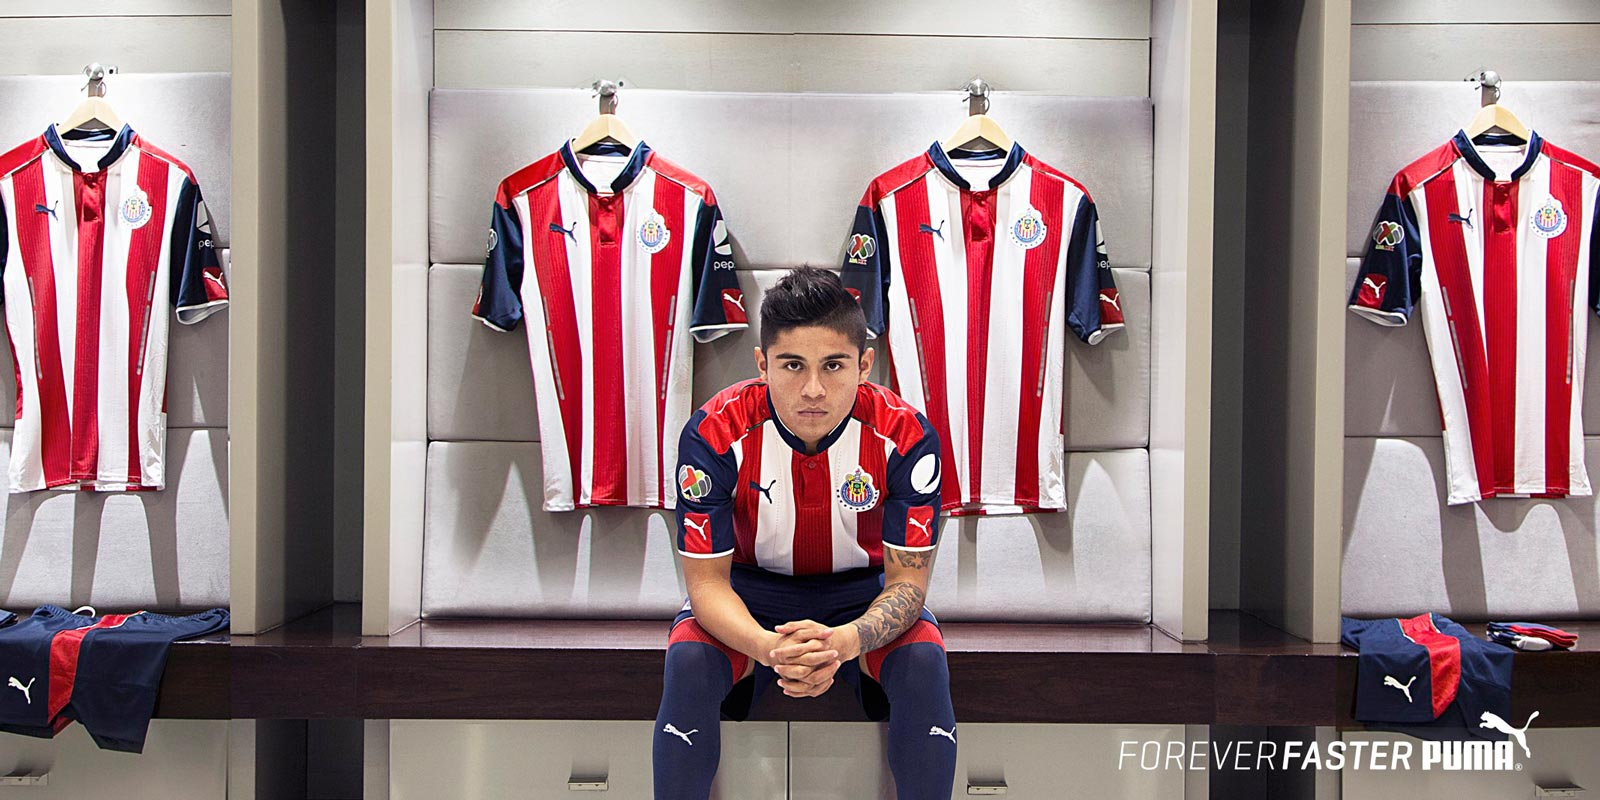 puma-chivas-16-17-home-kit-3.jpg